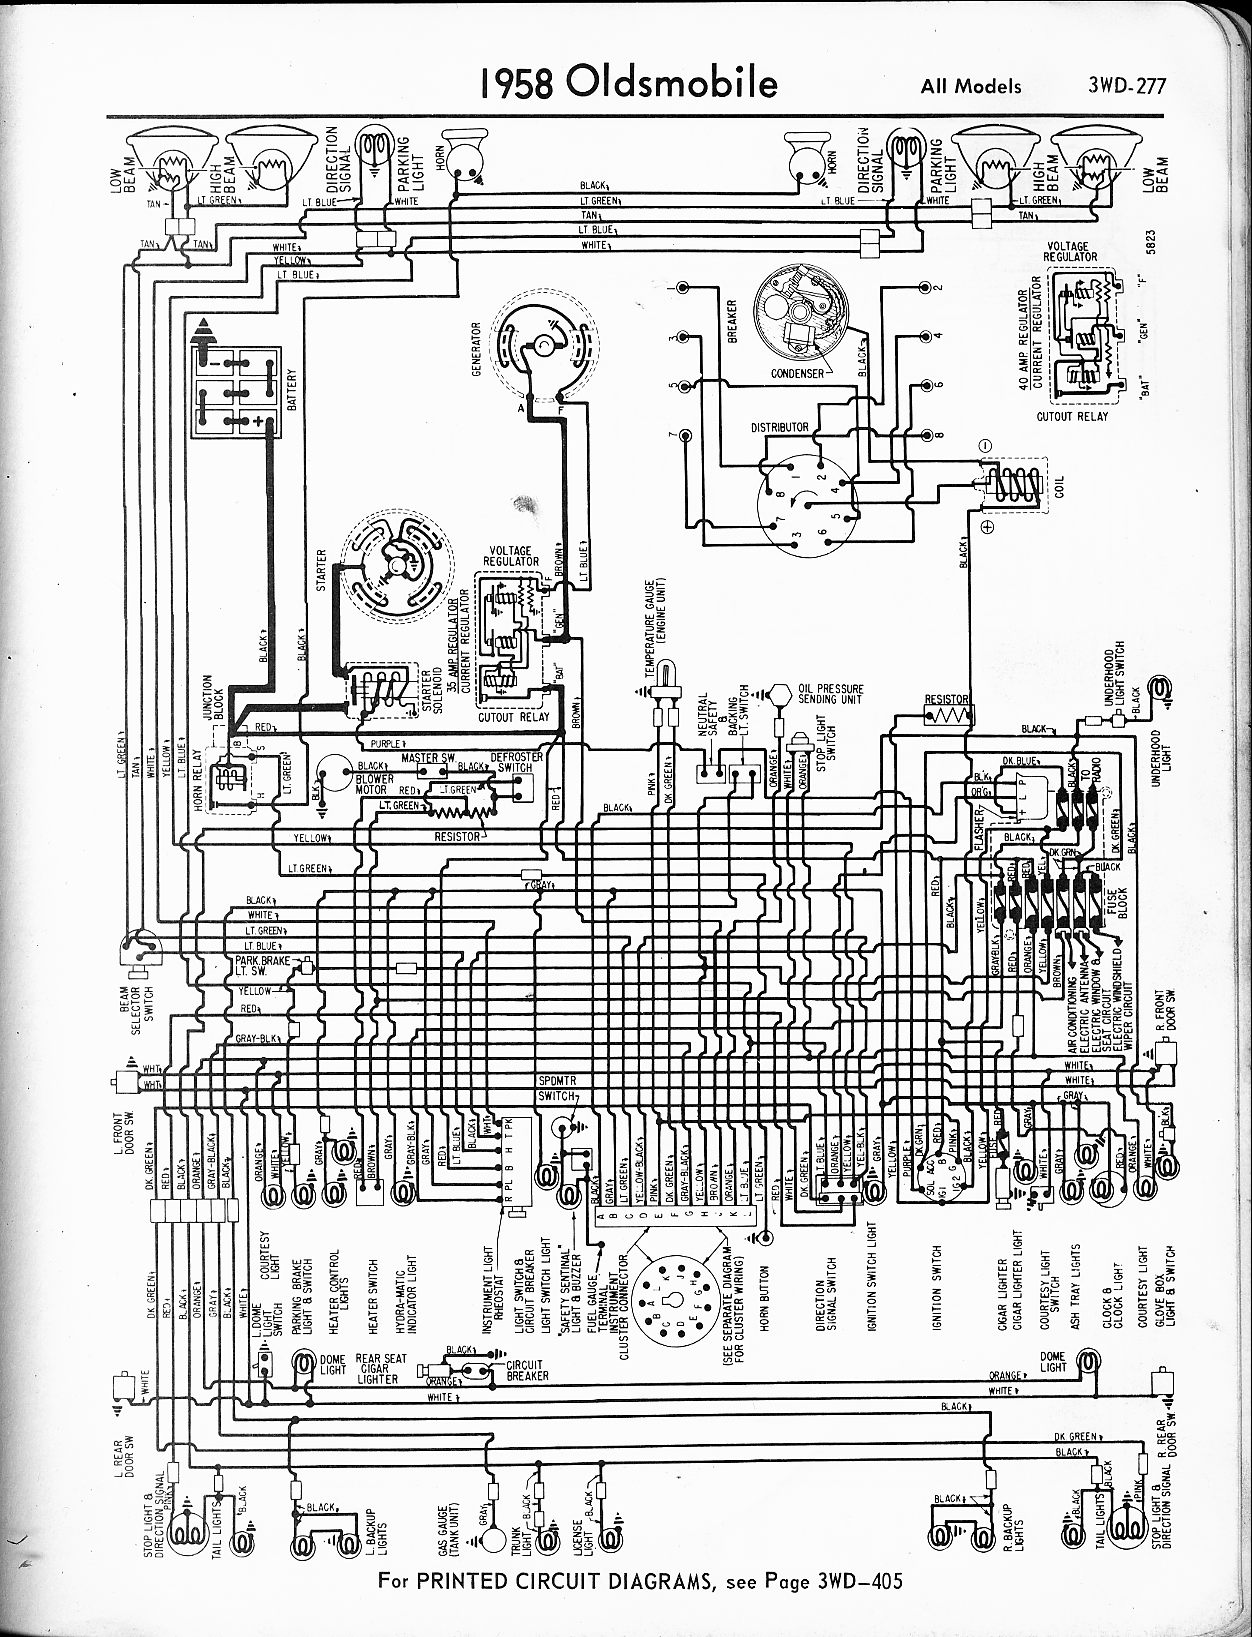 1970 Olds Cutl Wiring Diagram Diagrams Cadillac 1965 442 All Kind Of U2022 Rh Investatlanta Co Plymouth